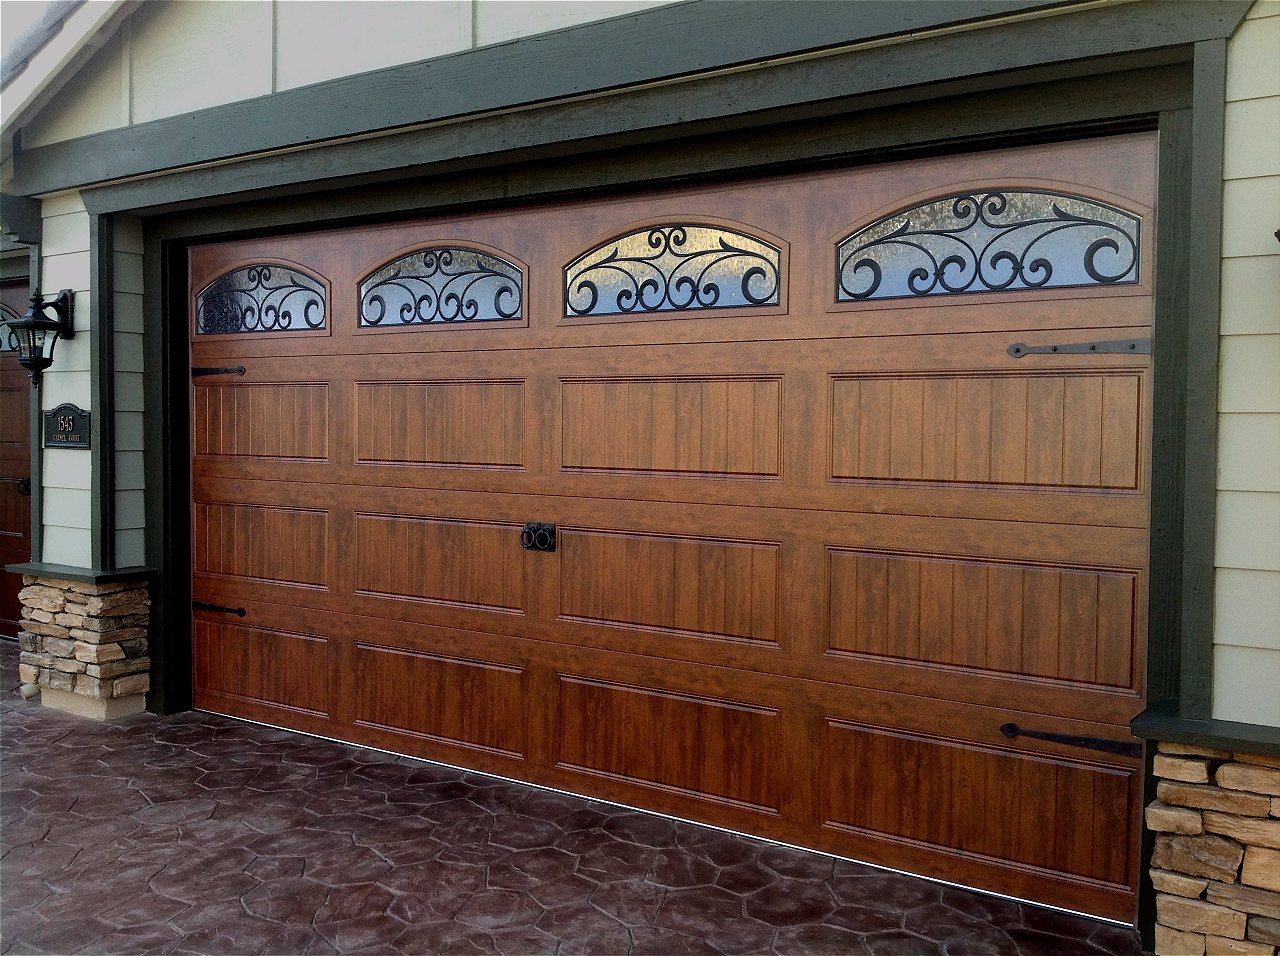 Gallery & Clopay Gallery Steel Woodgrain Garage Doors | On Trac Garage Doors Pezcame.Com